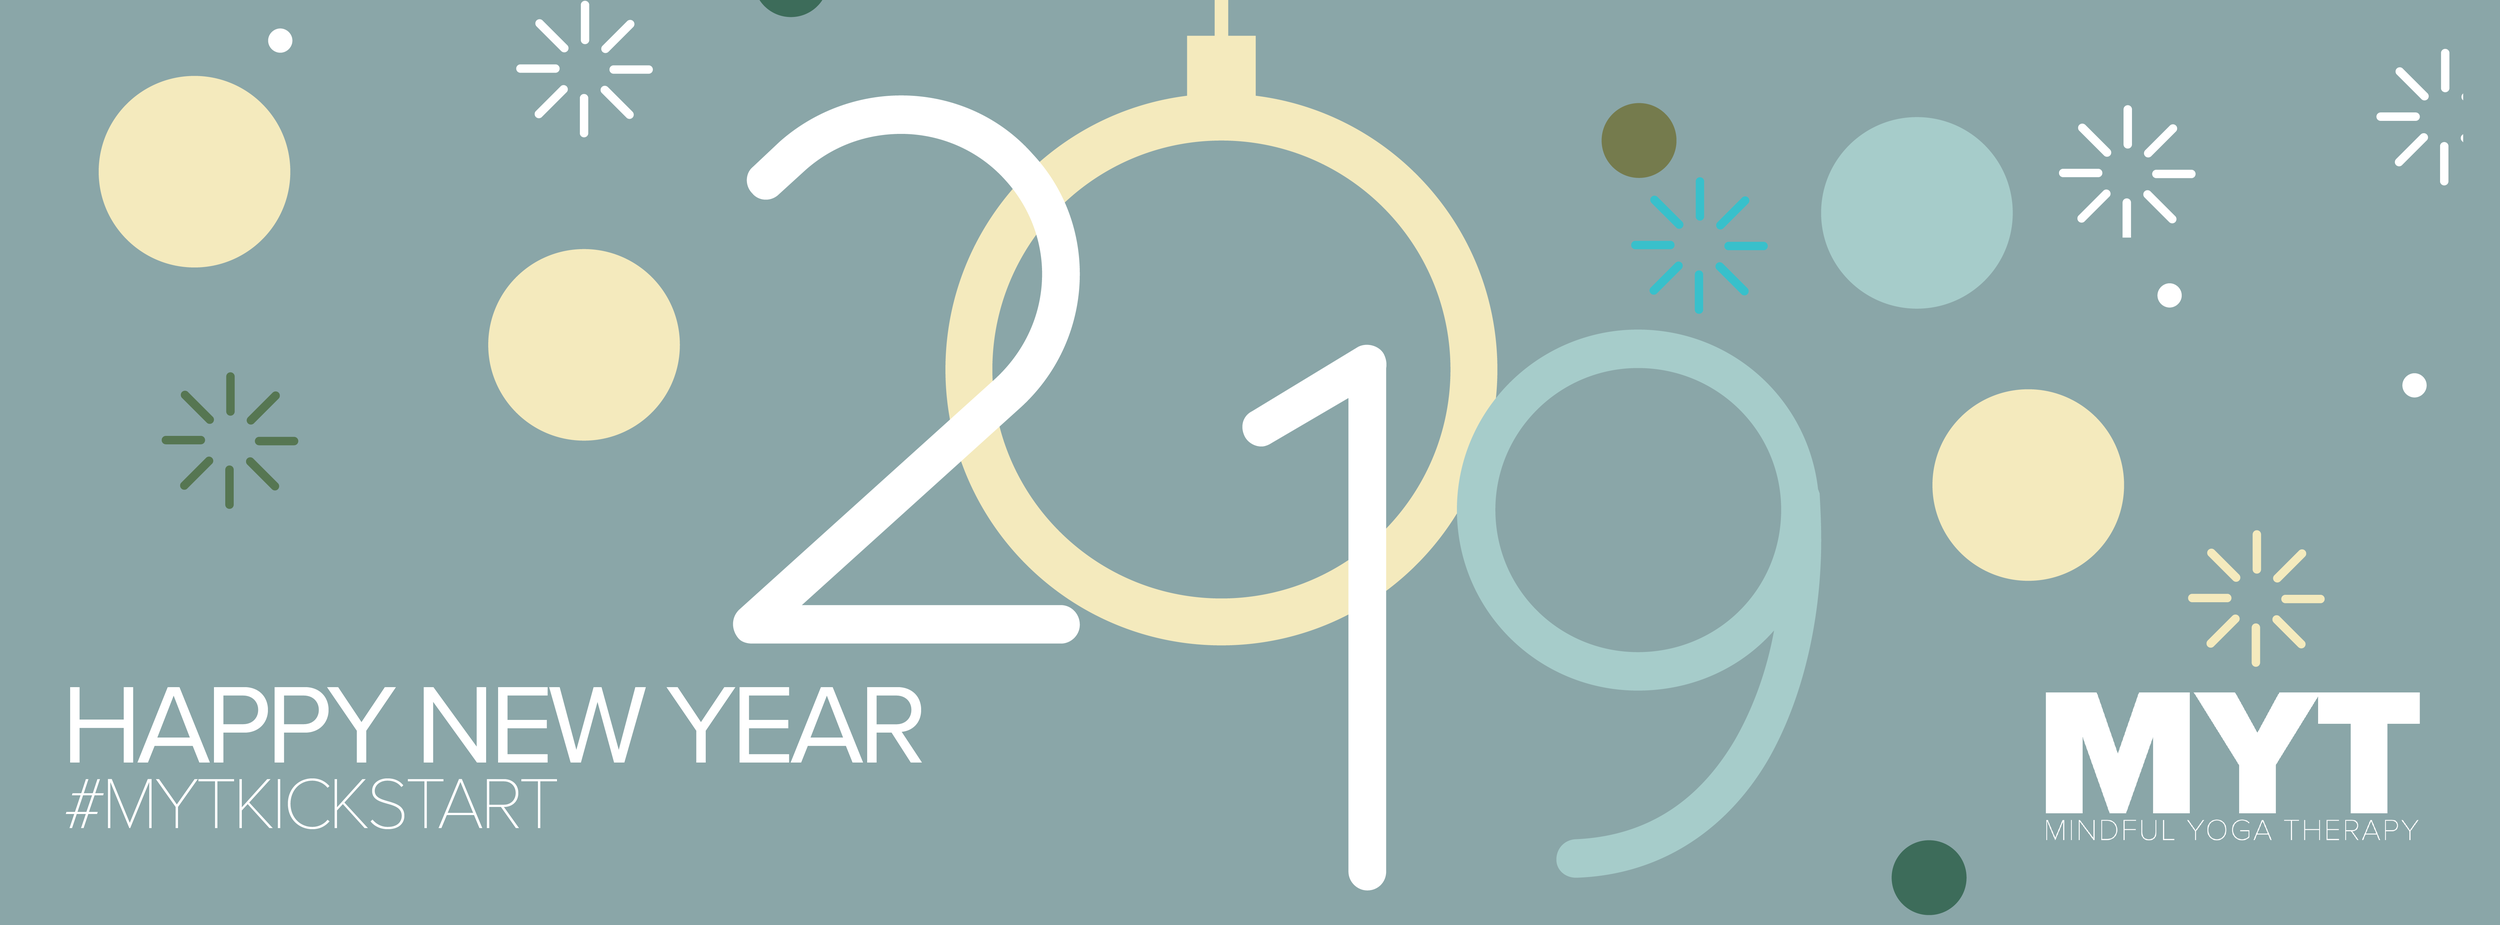 MYC_Facebook_Cover_NewYear2019-01.png